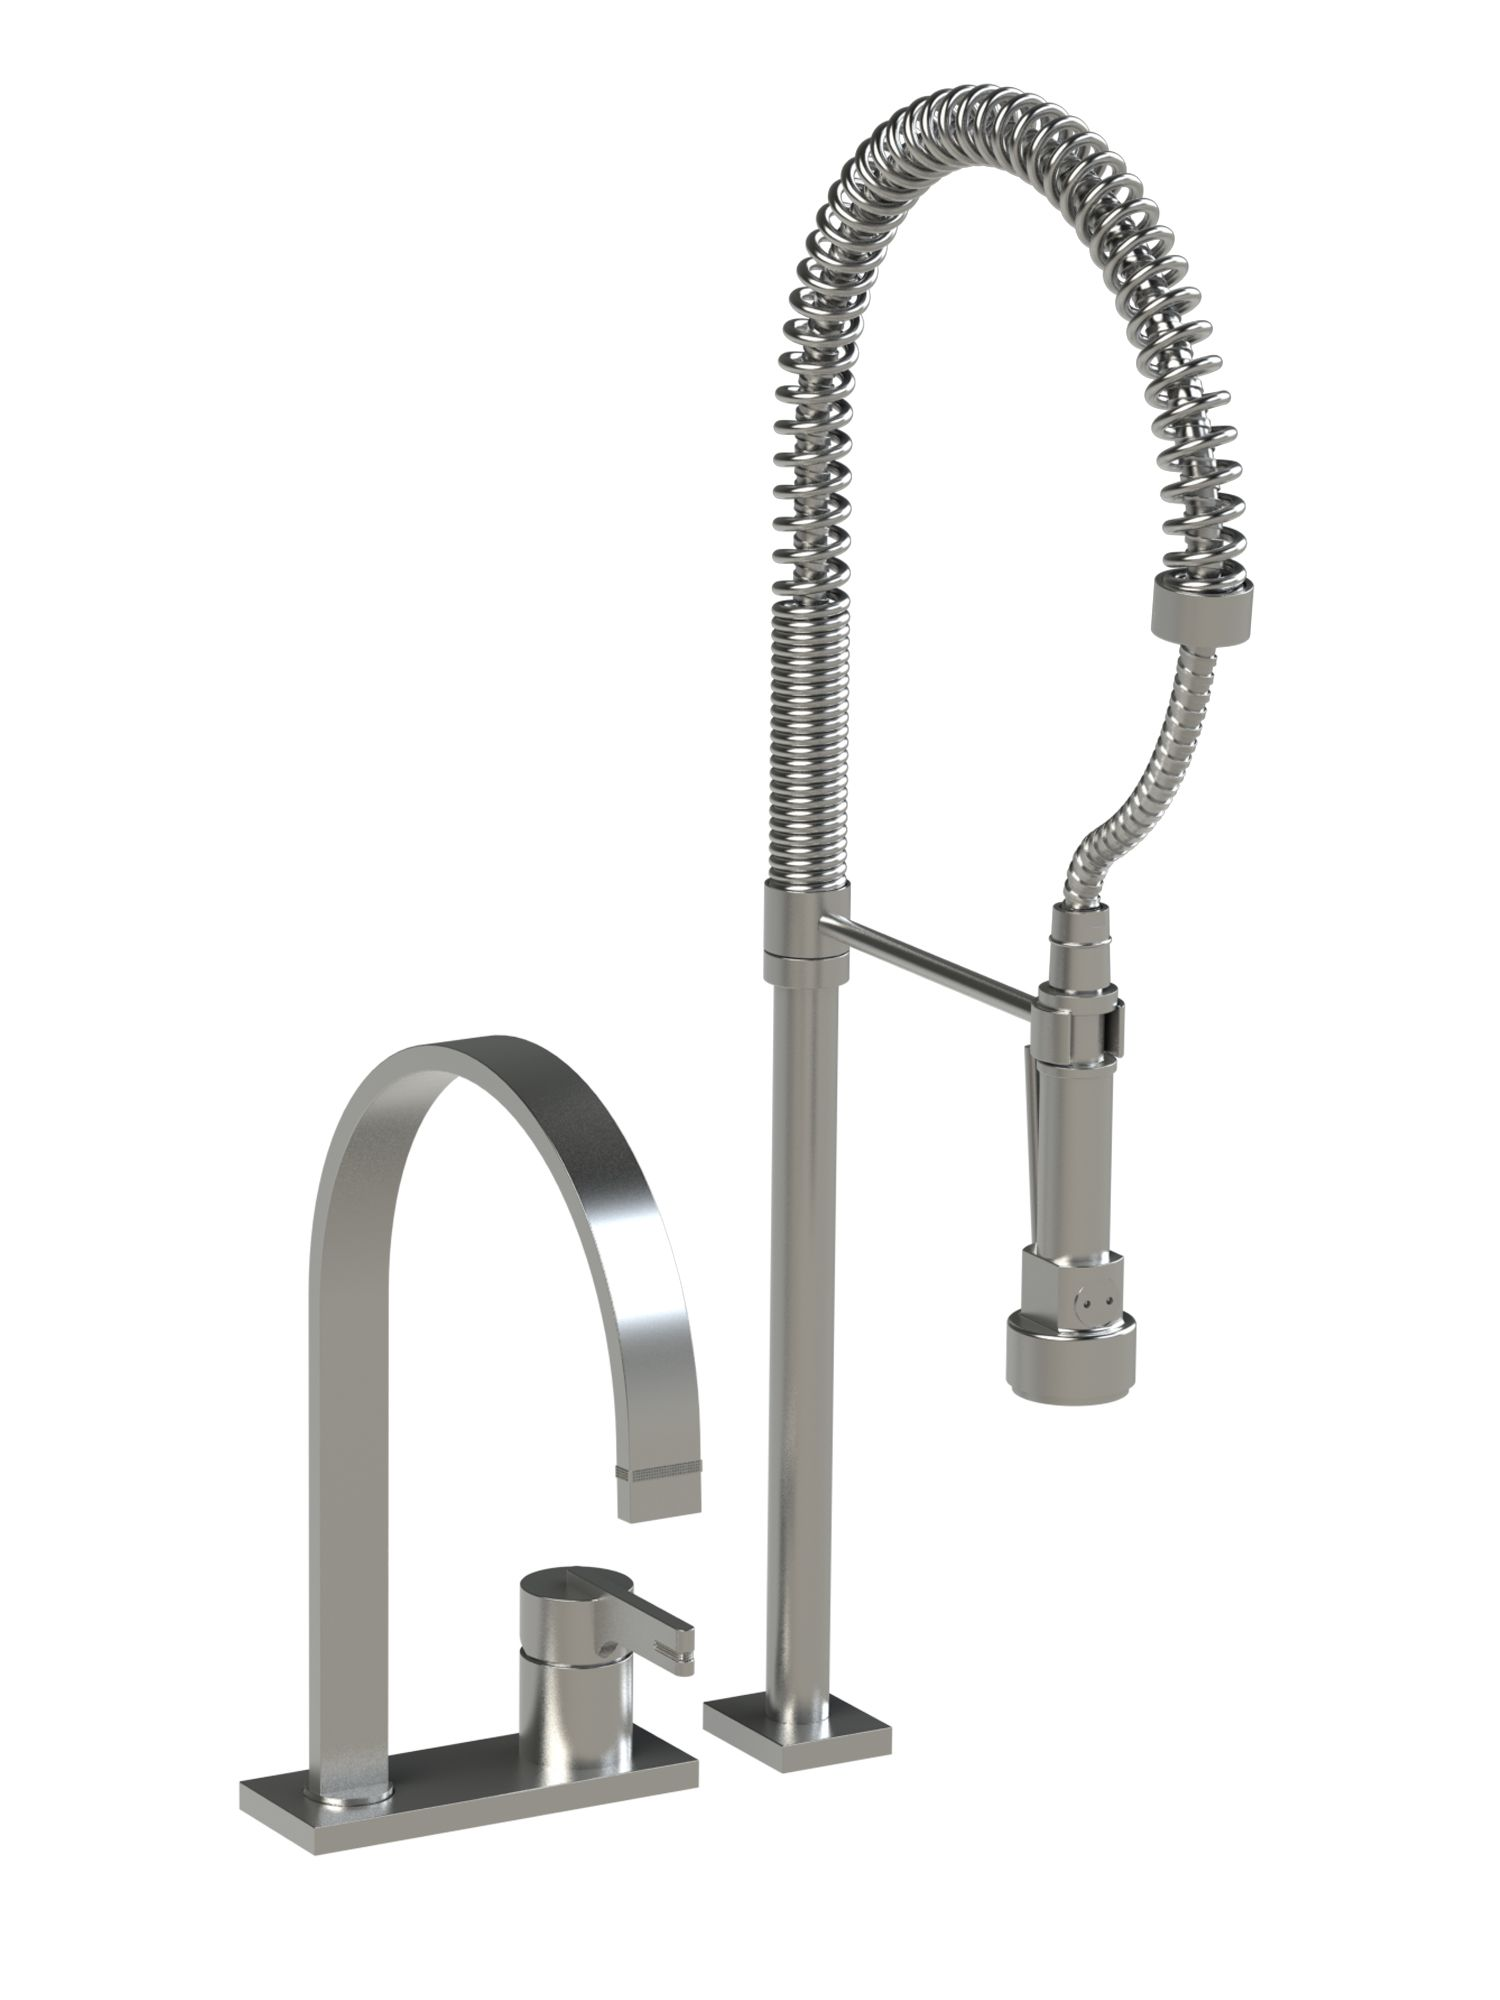 Restaurant Kitchen Faucet Rubinets Modern Kitchen Faucet With Suspended Spray R10